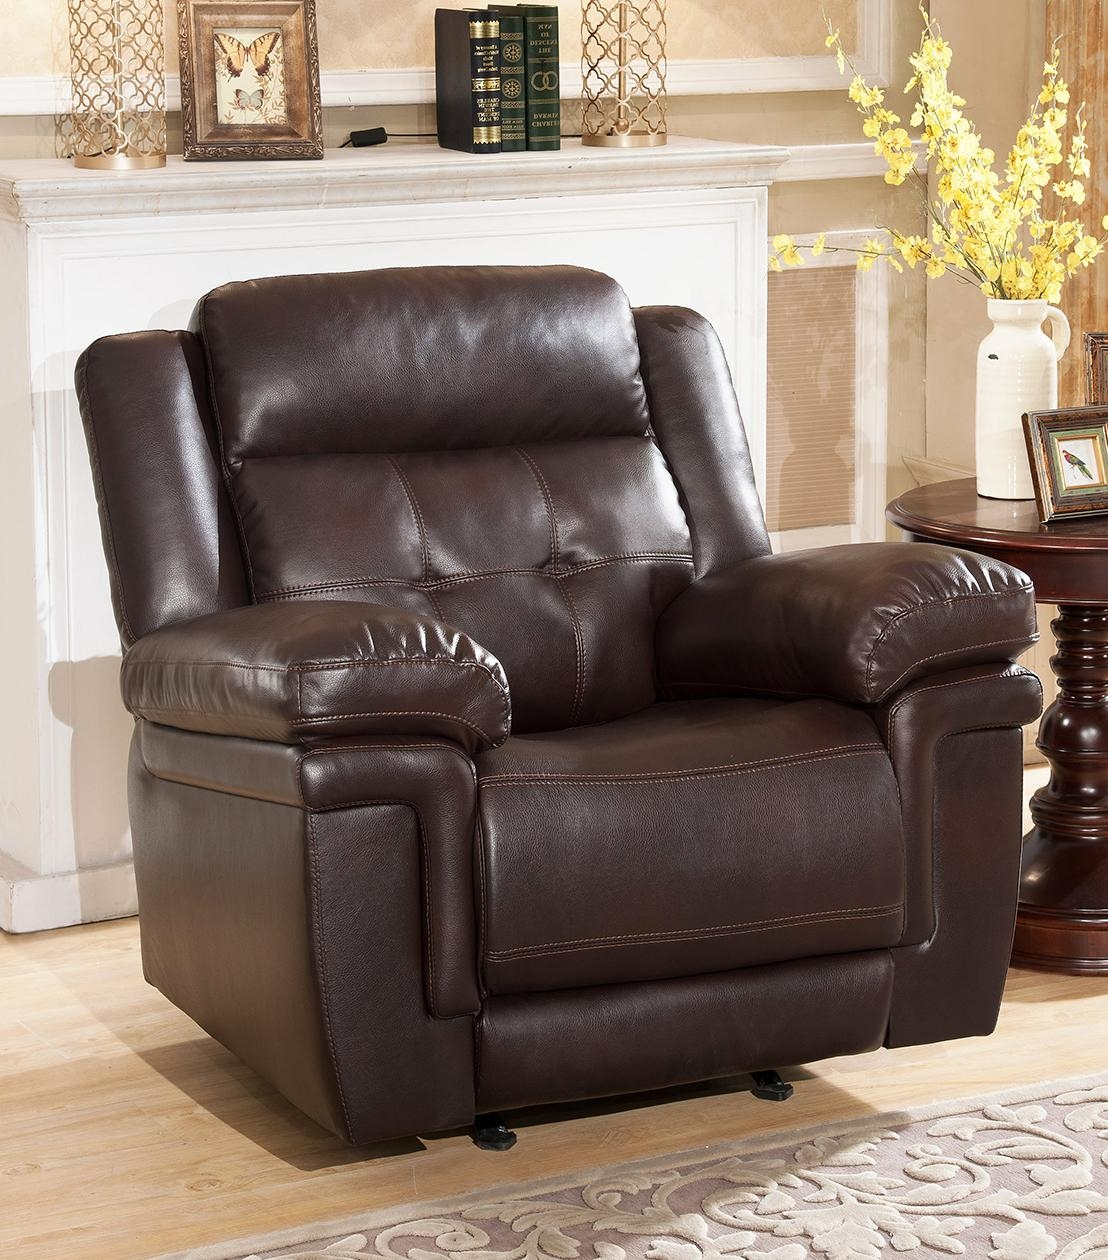 Recliners : Carly Leather Rocker Recliner Within Abbyson Recliners (View 11 of 20)